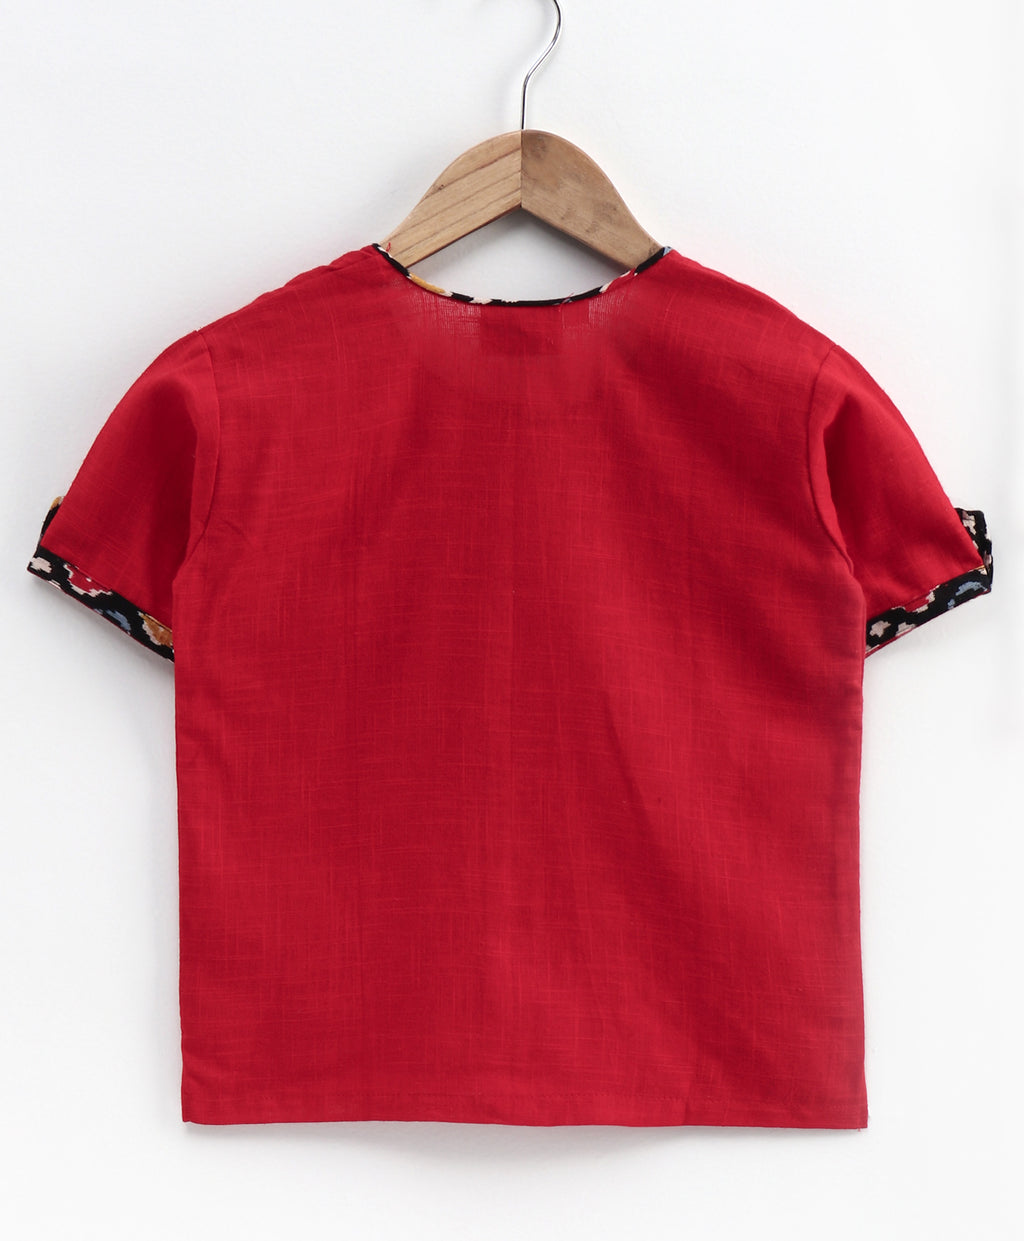 Cotton Half Sleeve Shirt For Baby Boys-Red